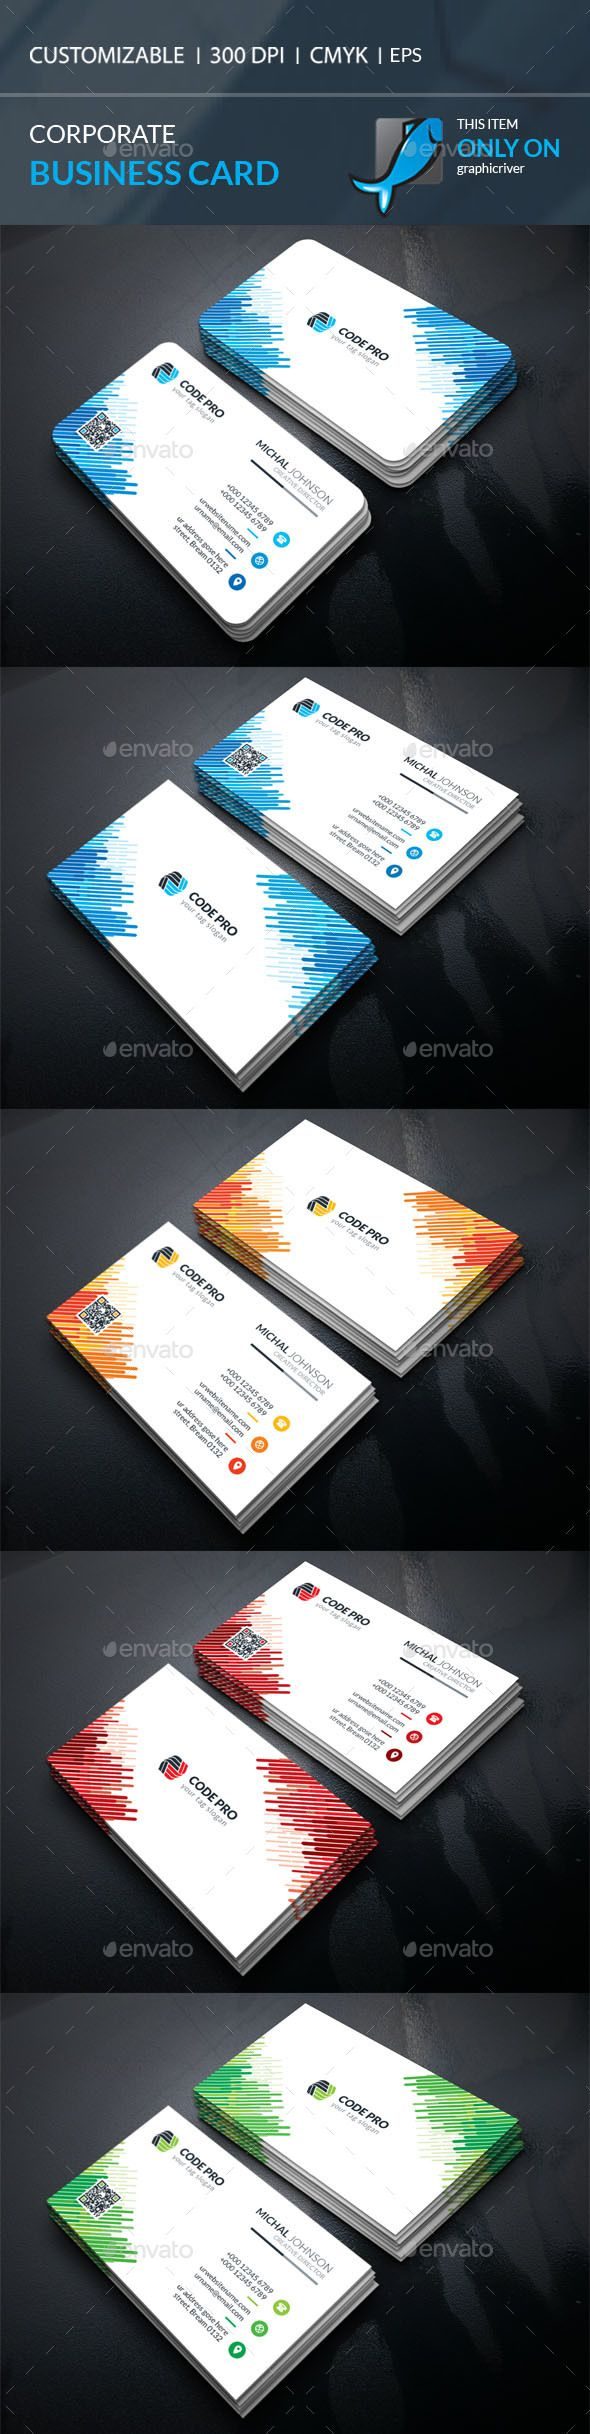 211 best business cards images on pinterest business card design corporate business card template vector eps ai illustrator download here https wajeb Image collections